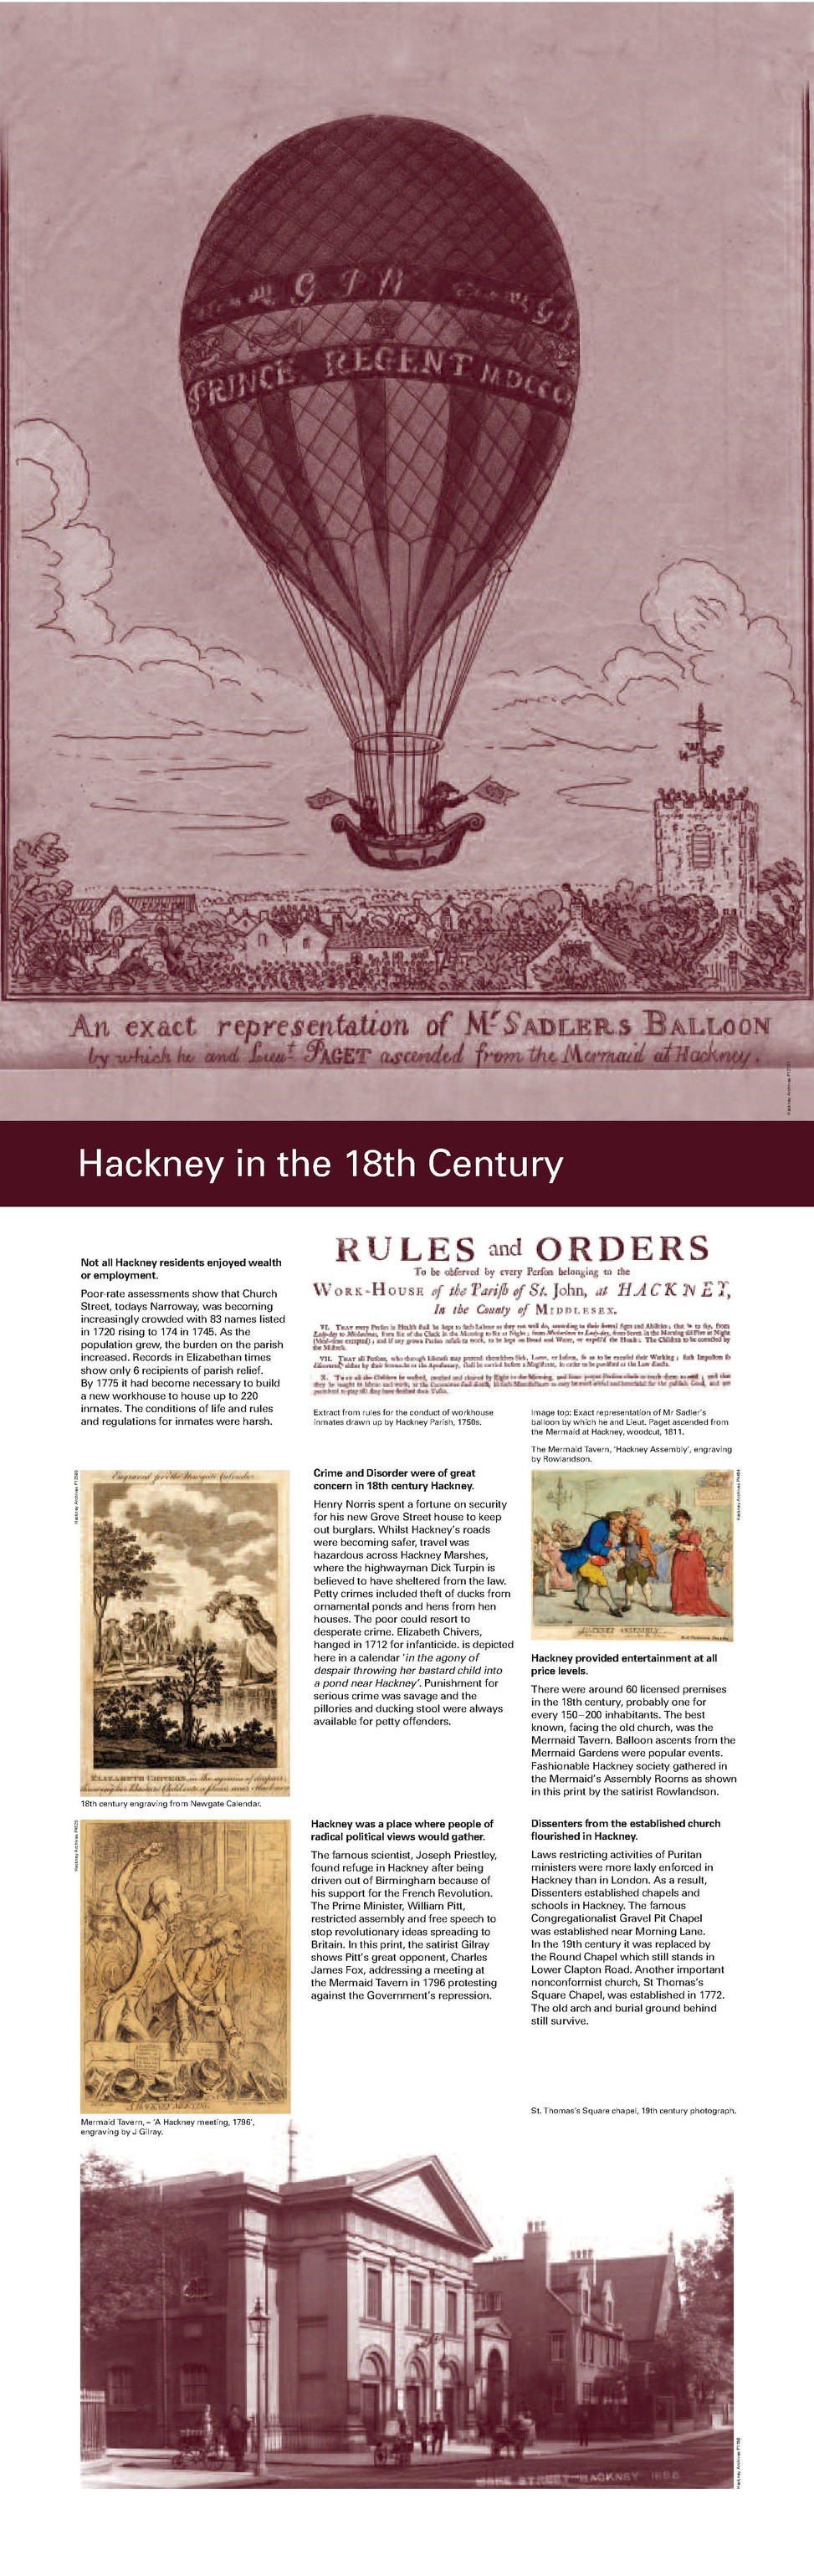 5 HACKNEY THROUGH THE AGES.